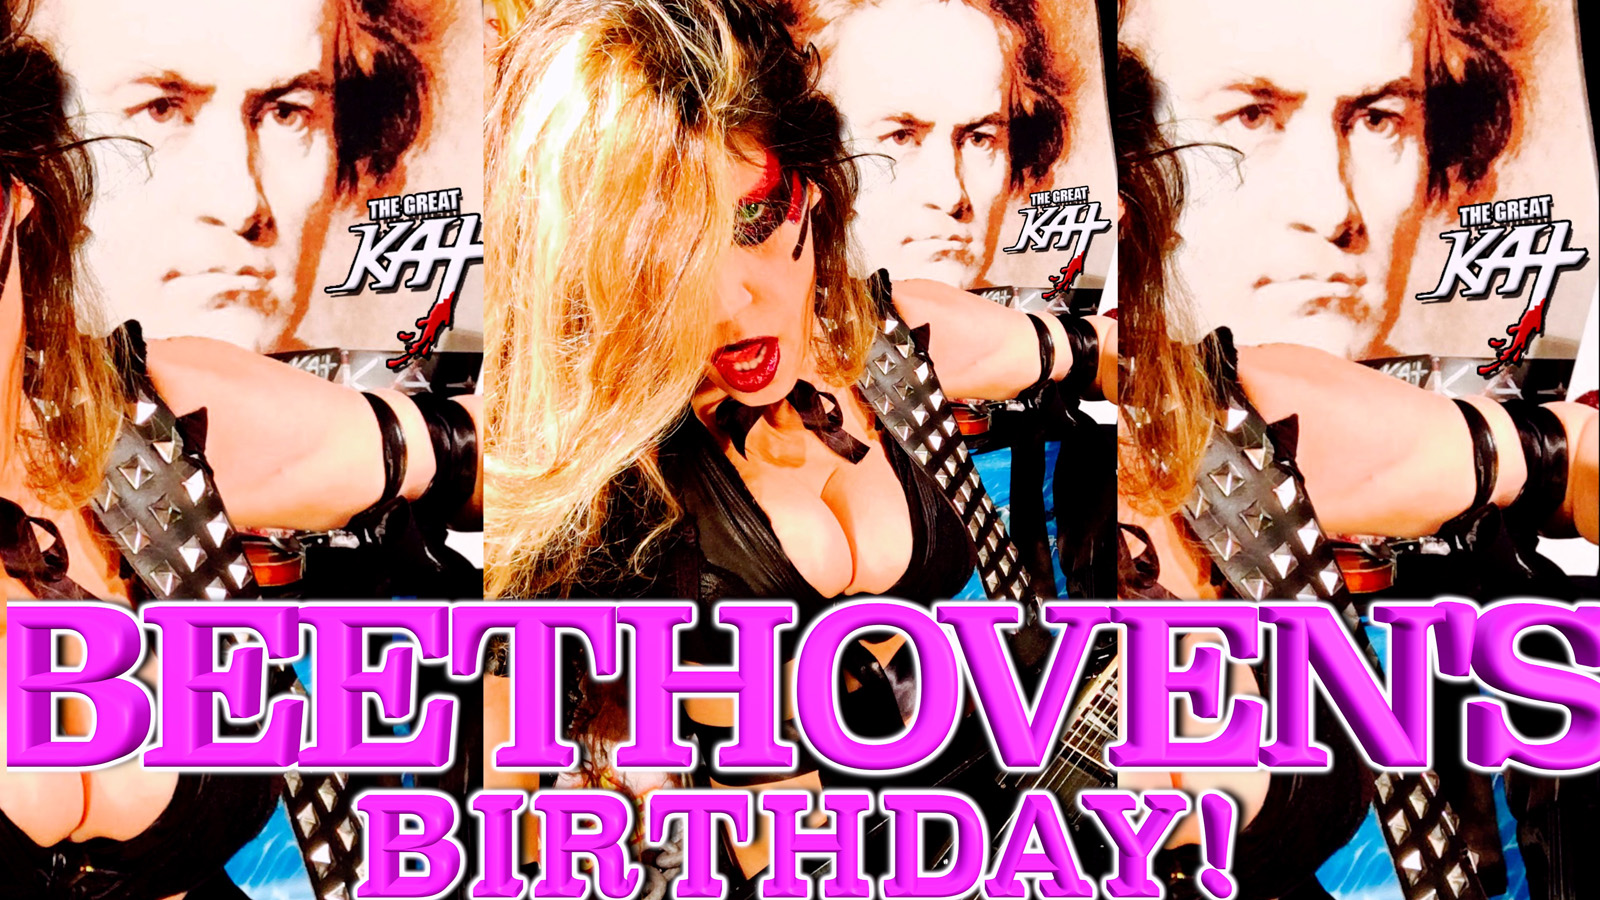 "THE GREAT KAT'S ""TOP 20 HOT SHRED HOLIDAYS!"" ""BEETHOVEN'S BIRTHDAY!"" From The Great Kat's NEW DVD!!!!"